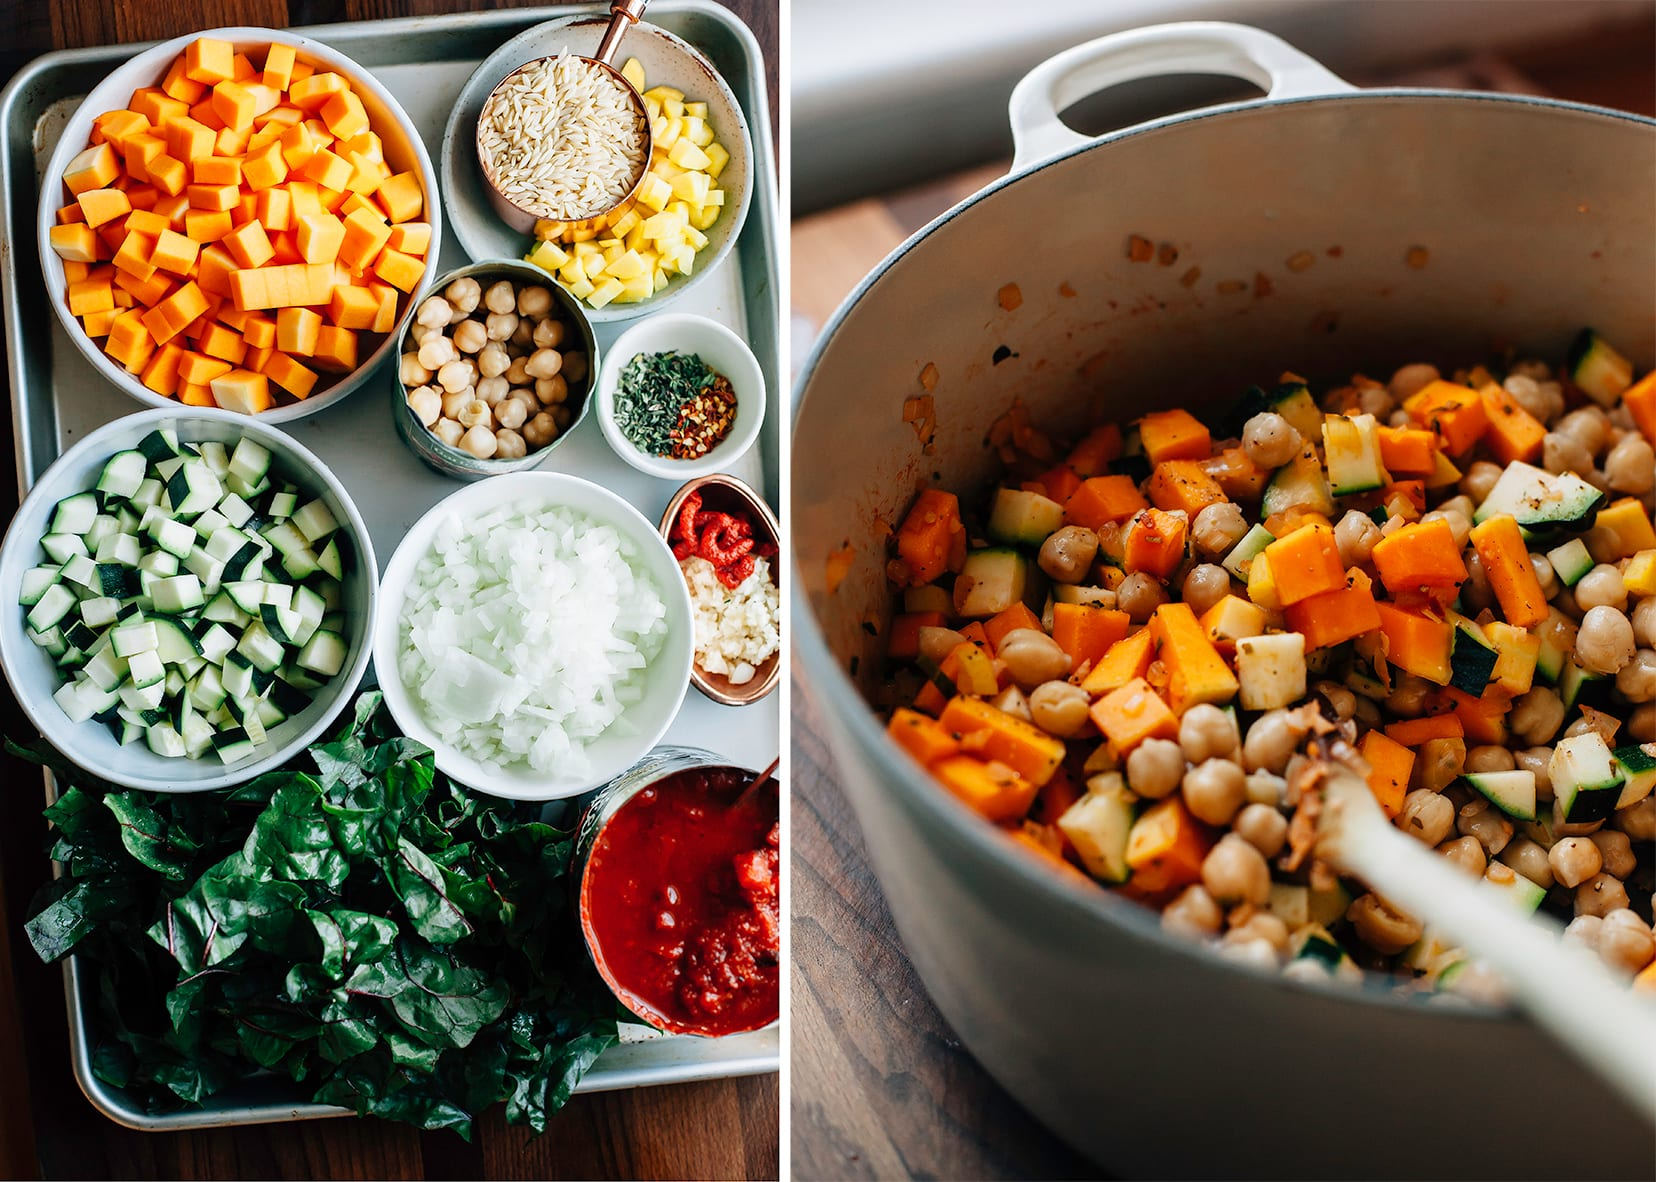 Side by side: all prepped and chopped ingredients for a butternut minestrone in little bowls set in a baking sheet. The other photo shows the vegetables for the soup being sautéed in a Dutch oven.